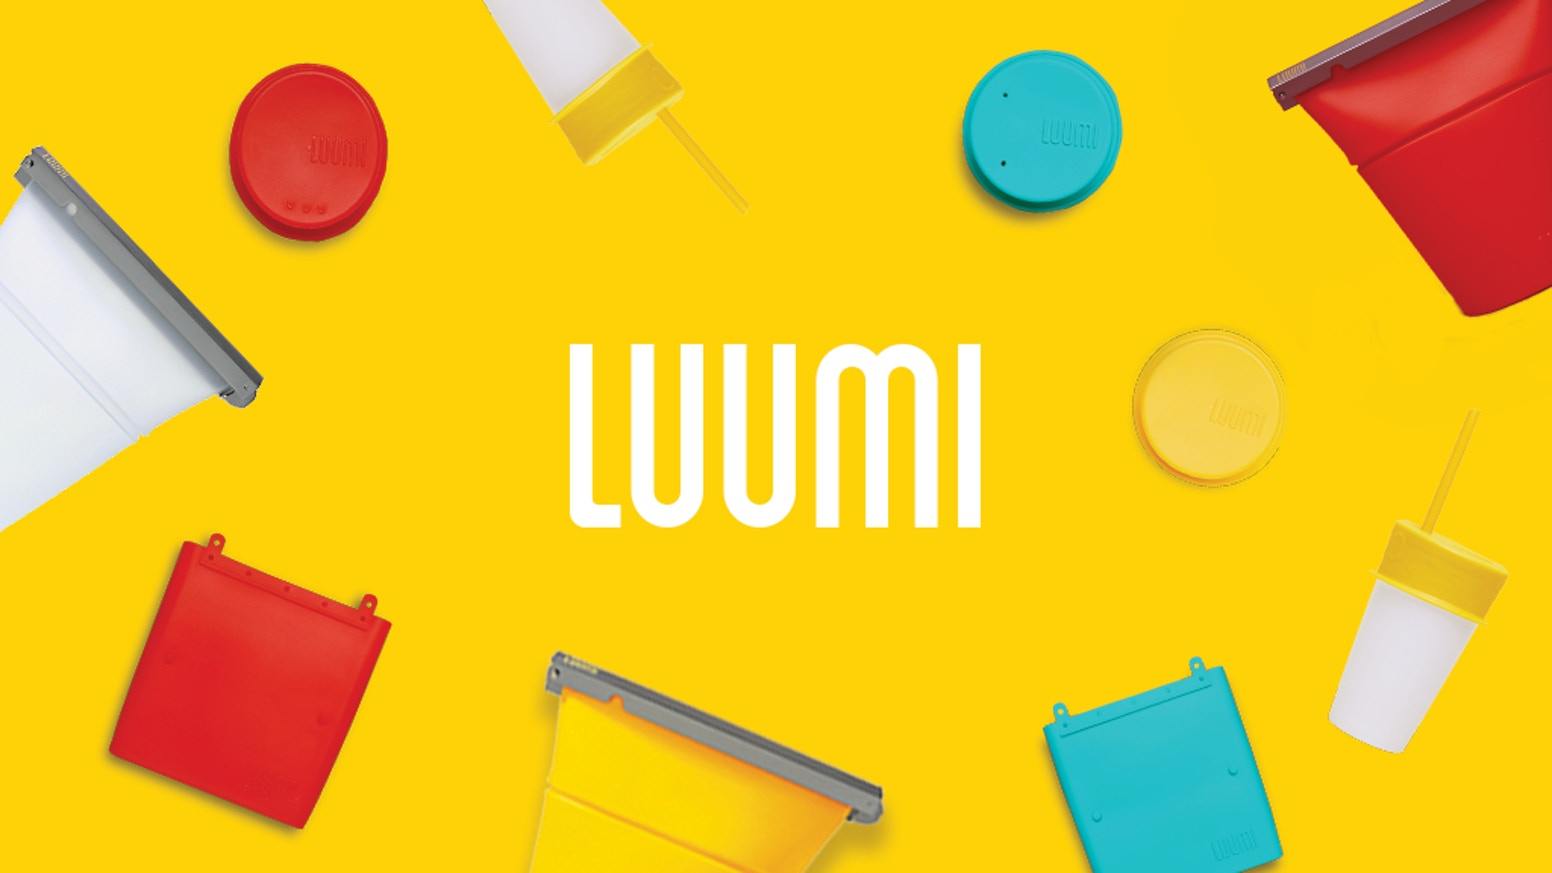 LUUMI, Let's Unplastic the World! is the top crowdfunding project launched today. LUUMI, Let's Unplastic the World! raised over $58569 from 506 backers. Other top projects include Solar Warden, Oli y el Mundo Peculiar, The Practical Magic Activation Deck: Activate your life...